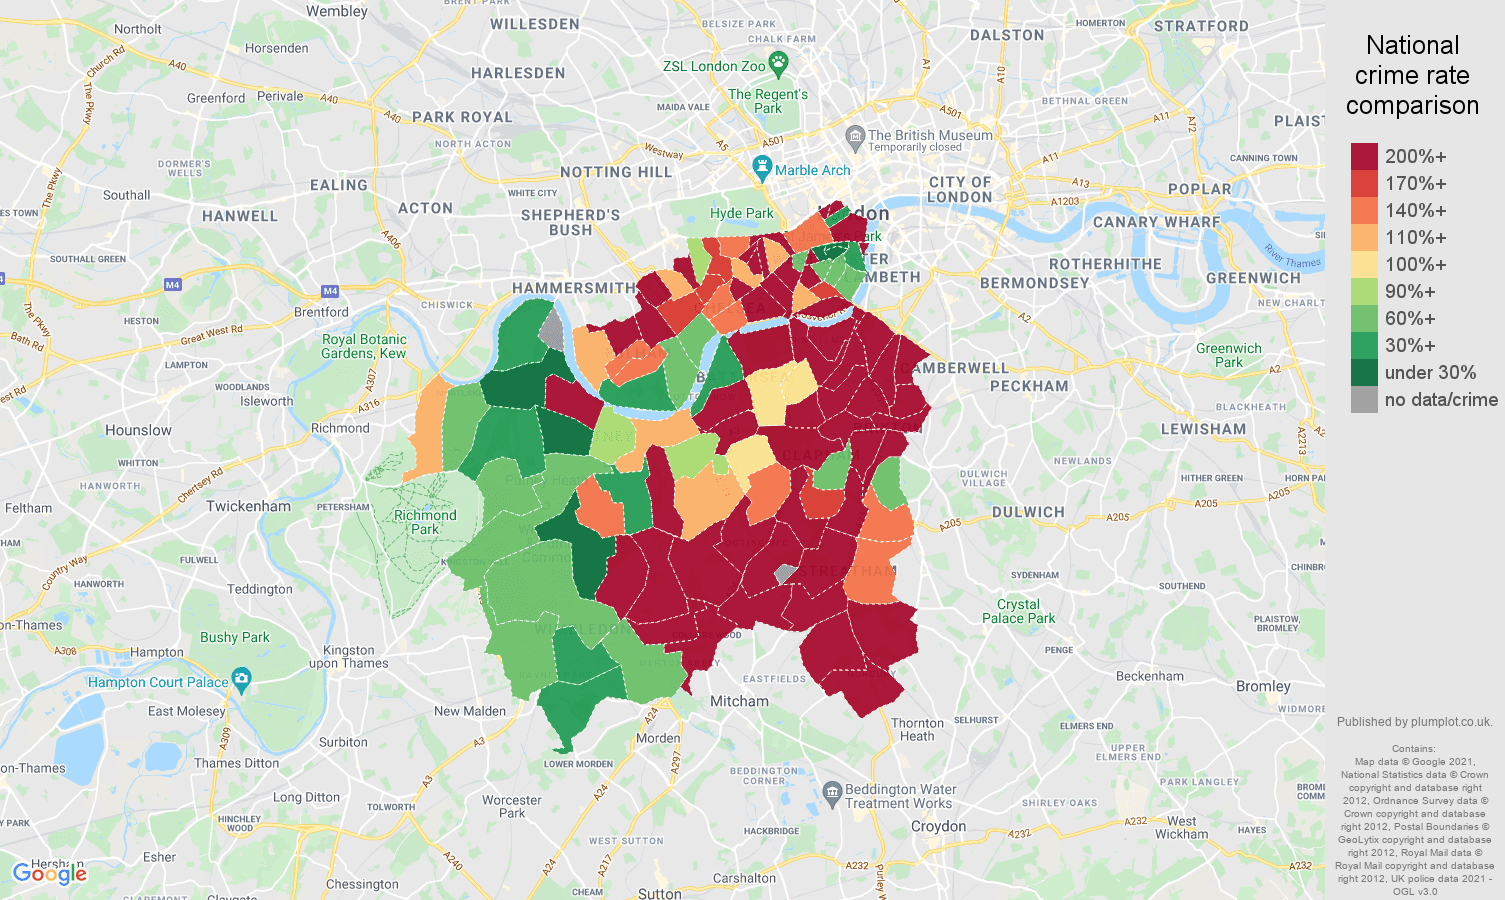 South West London theft from the person crime rate comparison map